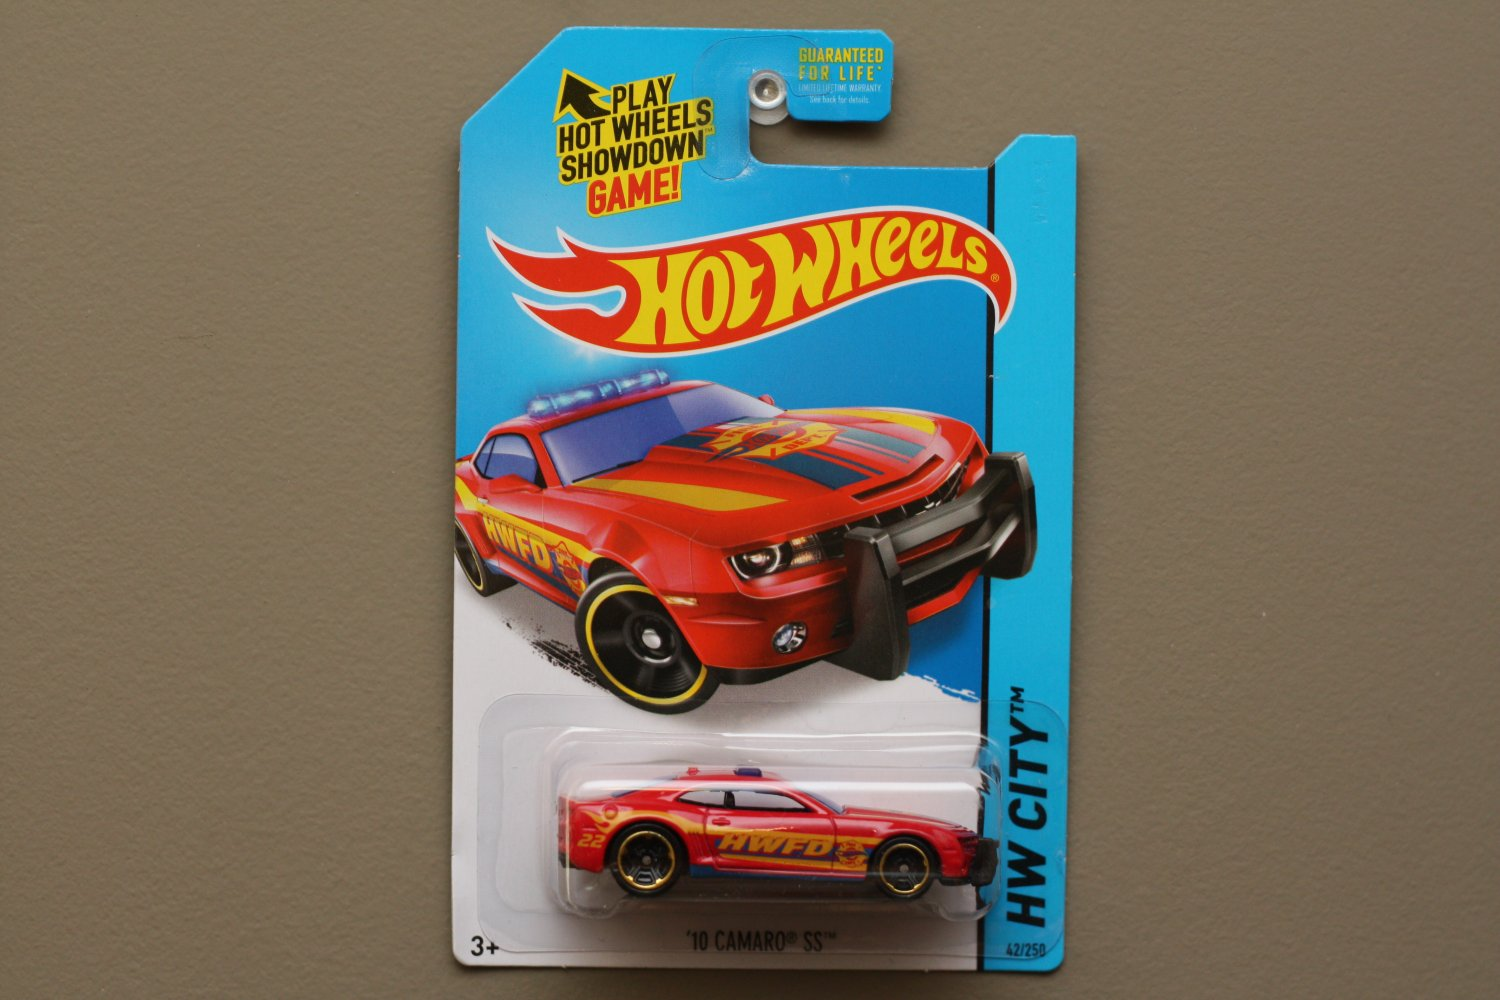 Hot Wheels 2014 HW City '10 Camaro SS (red)